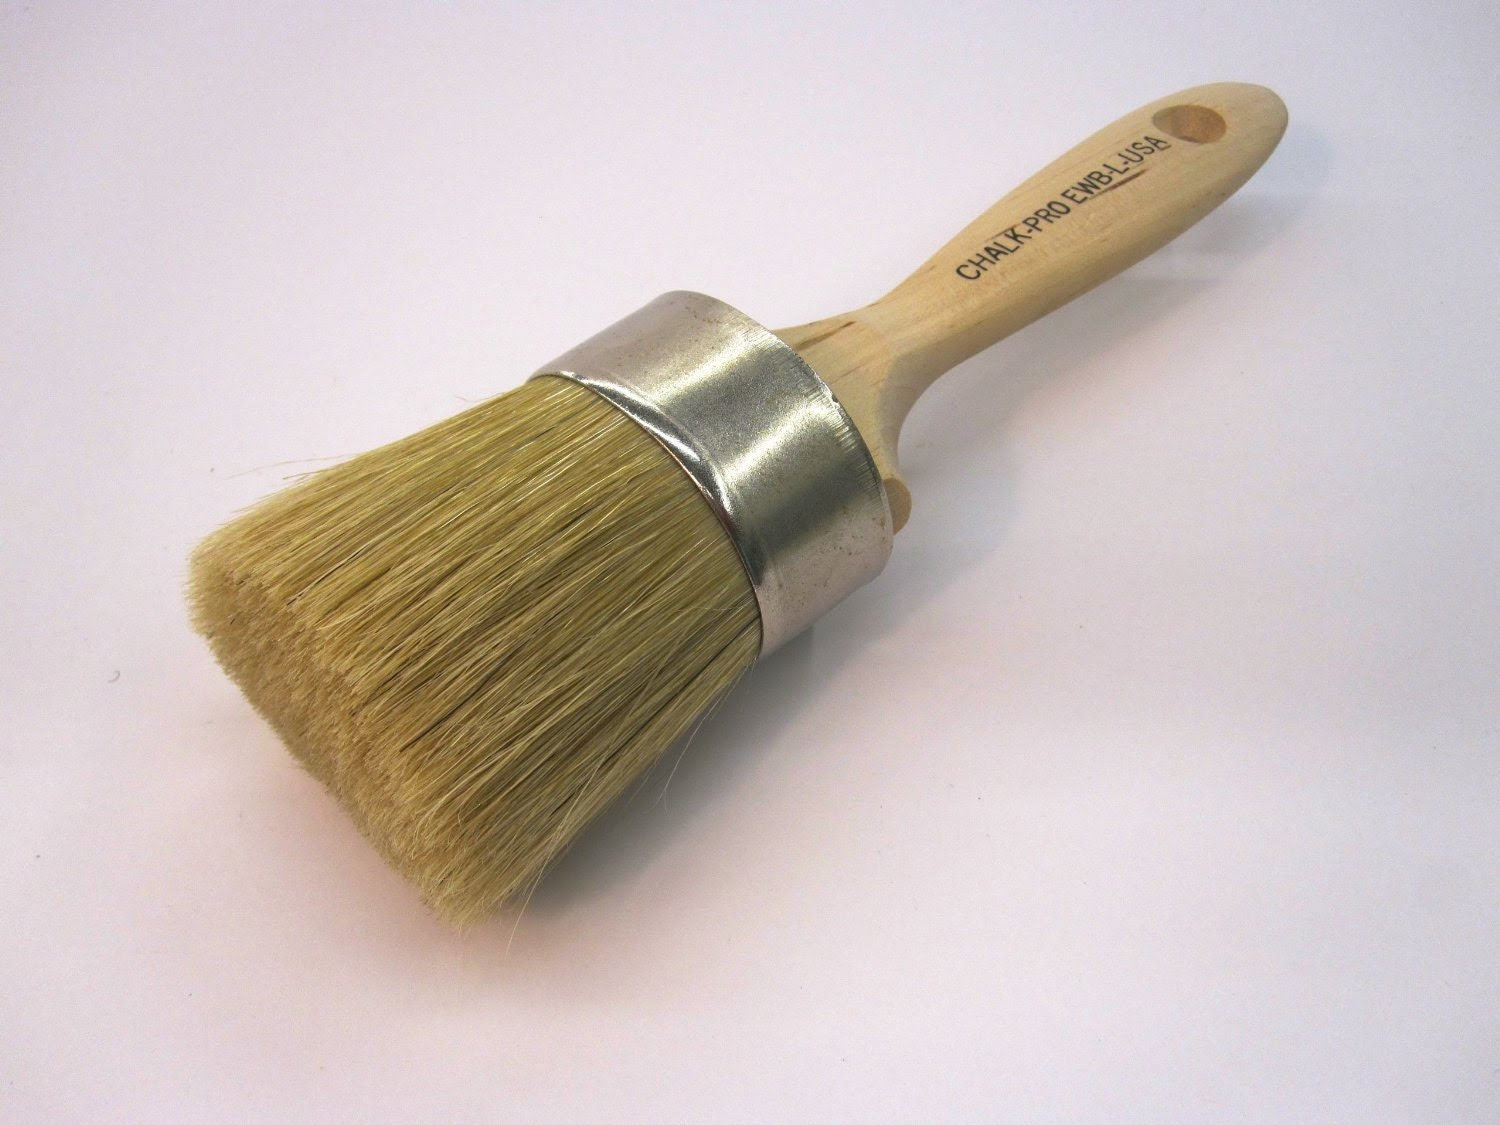 Chalk Paint & Wax Brush- HIGH QUALITY!- Small Medium or Large- Round Furniture Use w/ Annie Sloan Cece Caldwell Powders Etc - PaintitChic